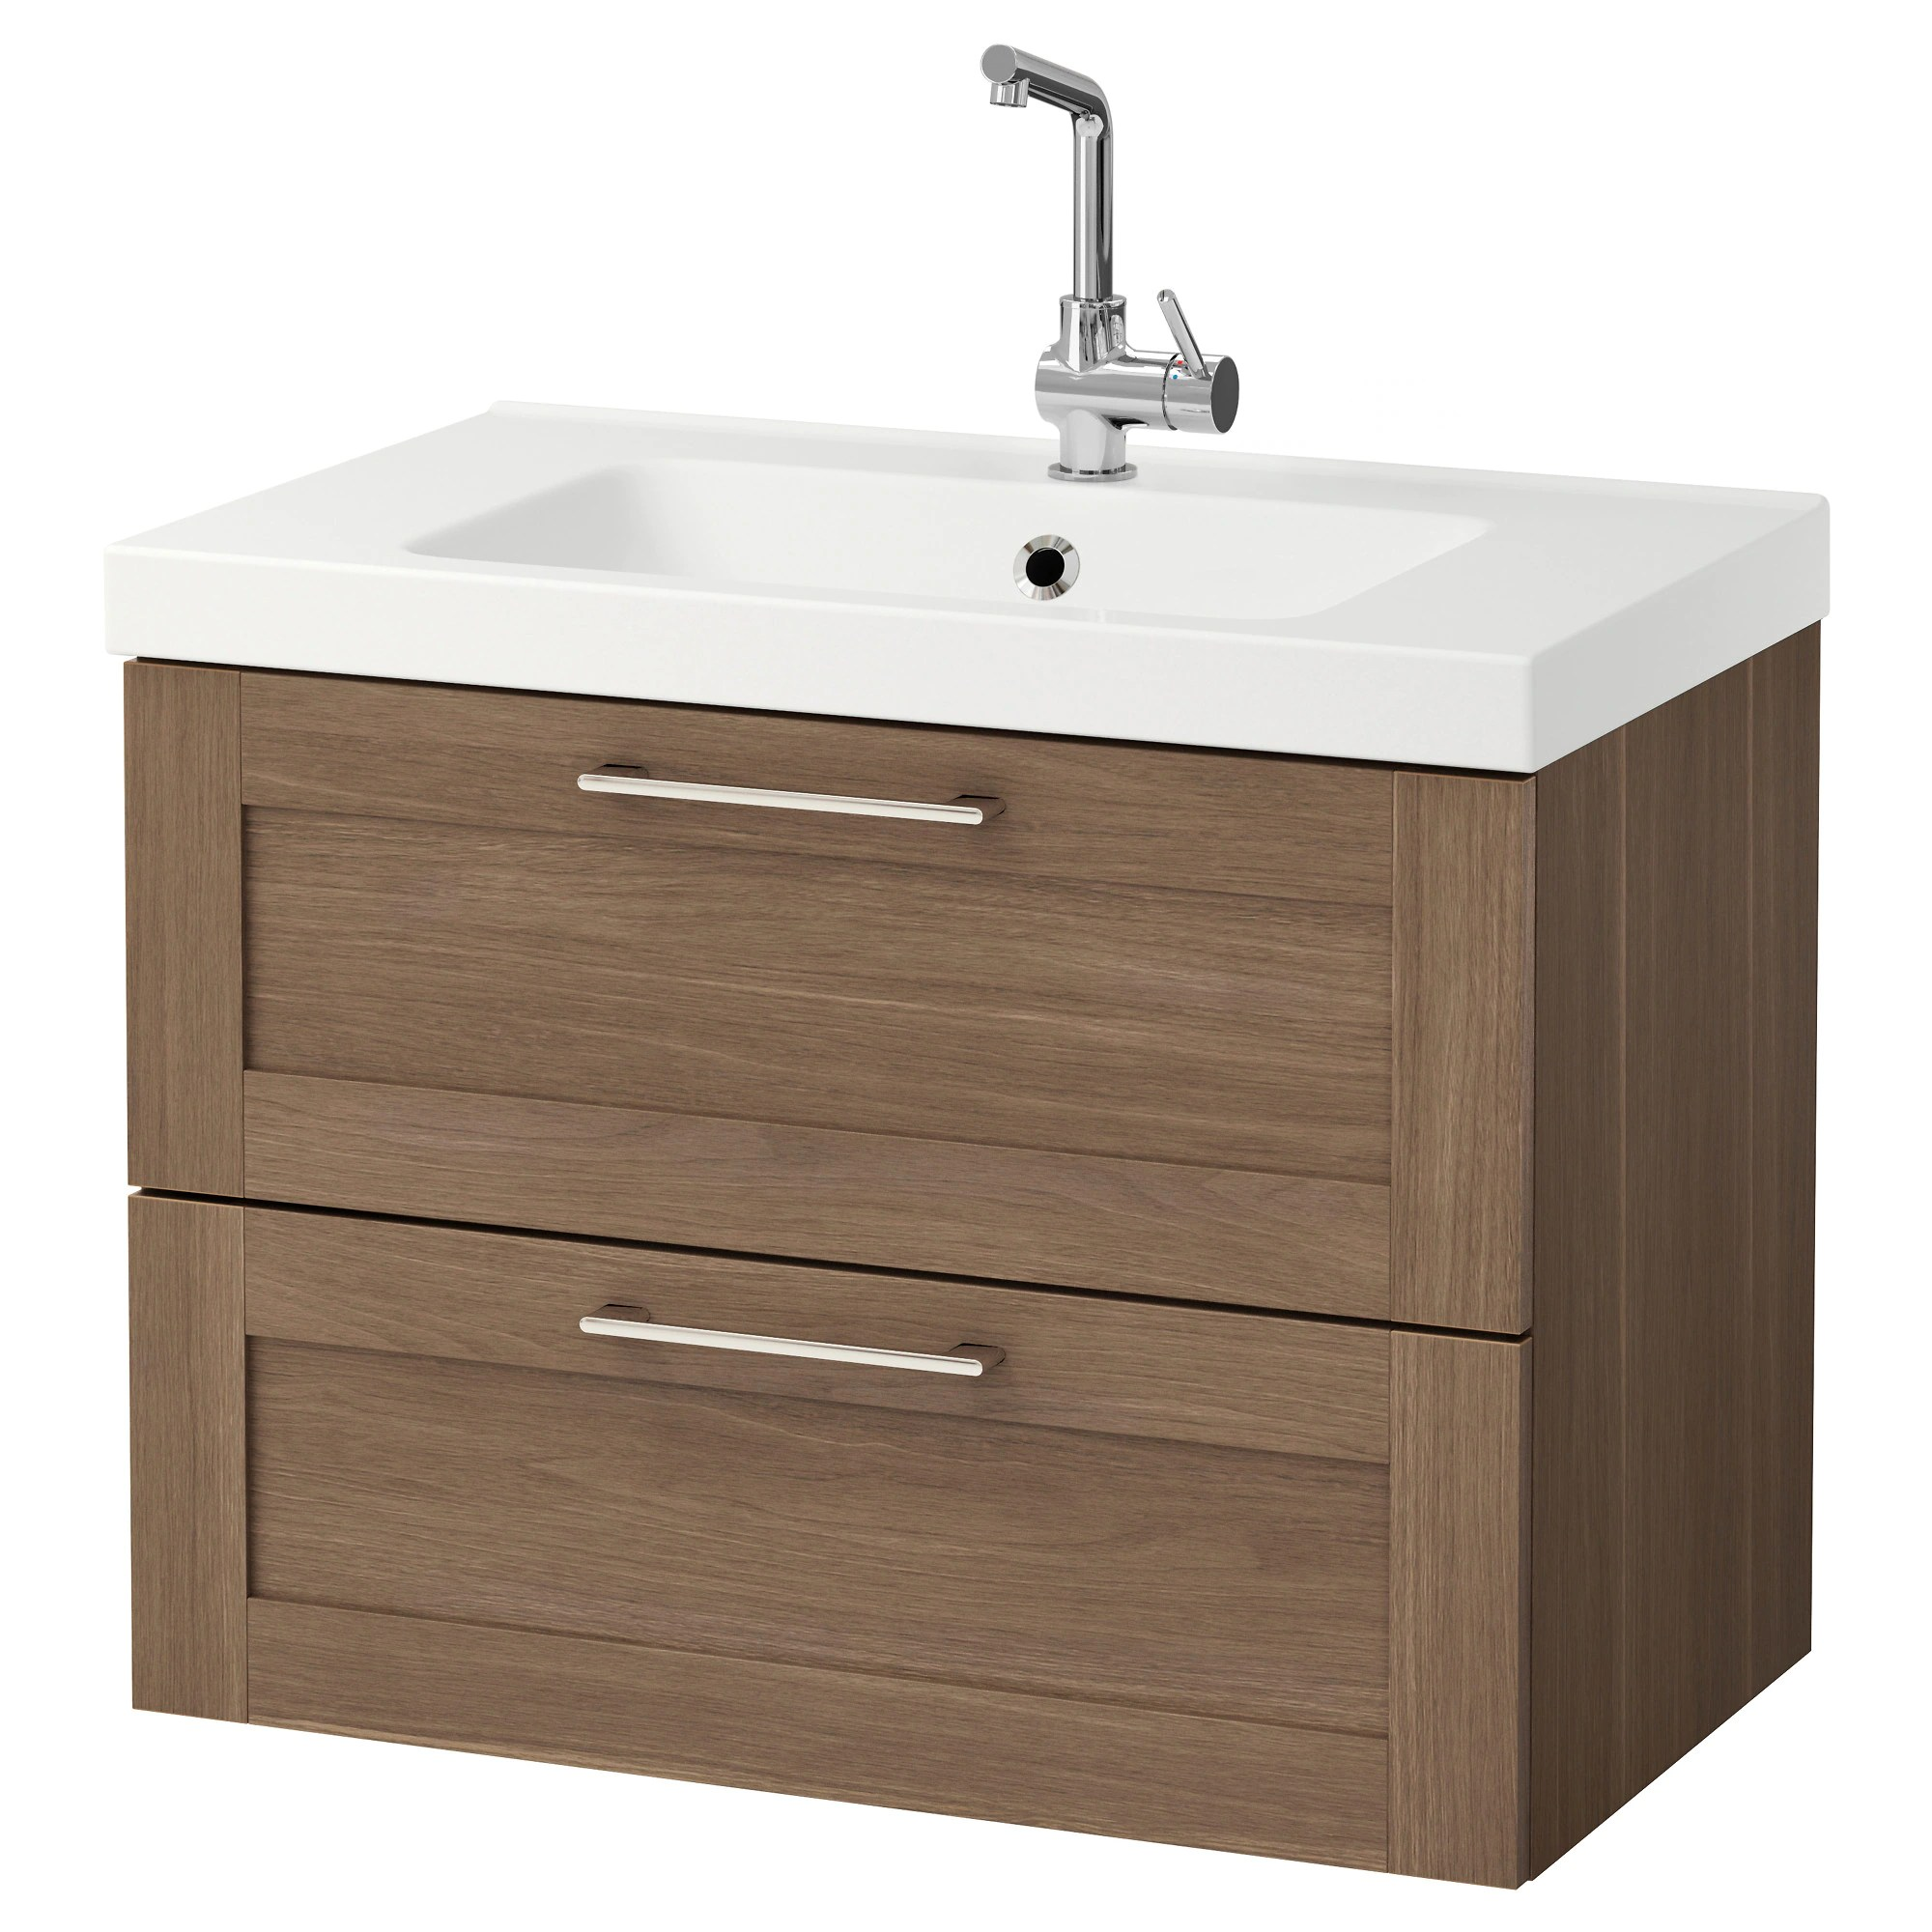 In Cabinet Drawers Godmorgon Odensvik Sink Cabinet With 2 Drawers Gray High Gloss Gray